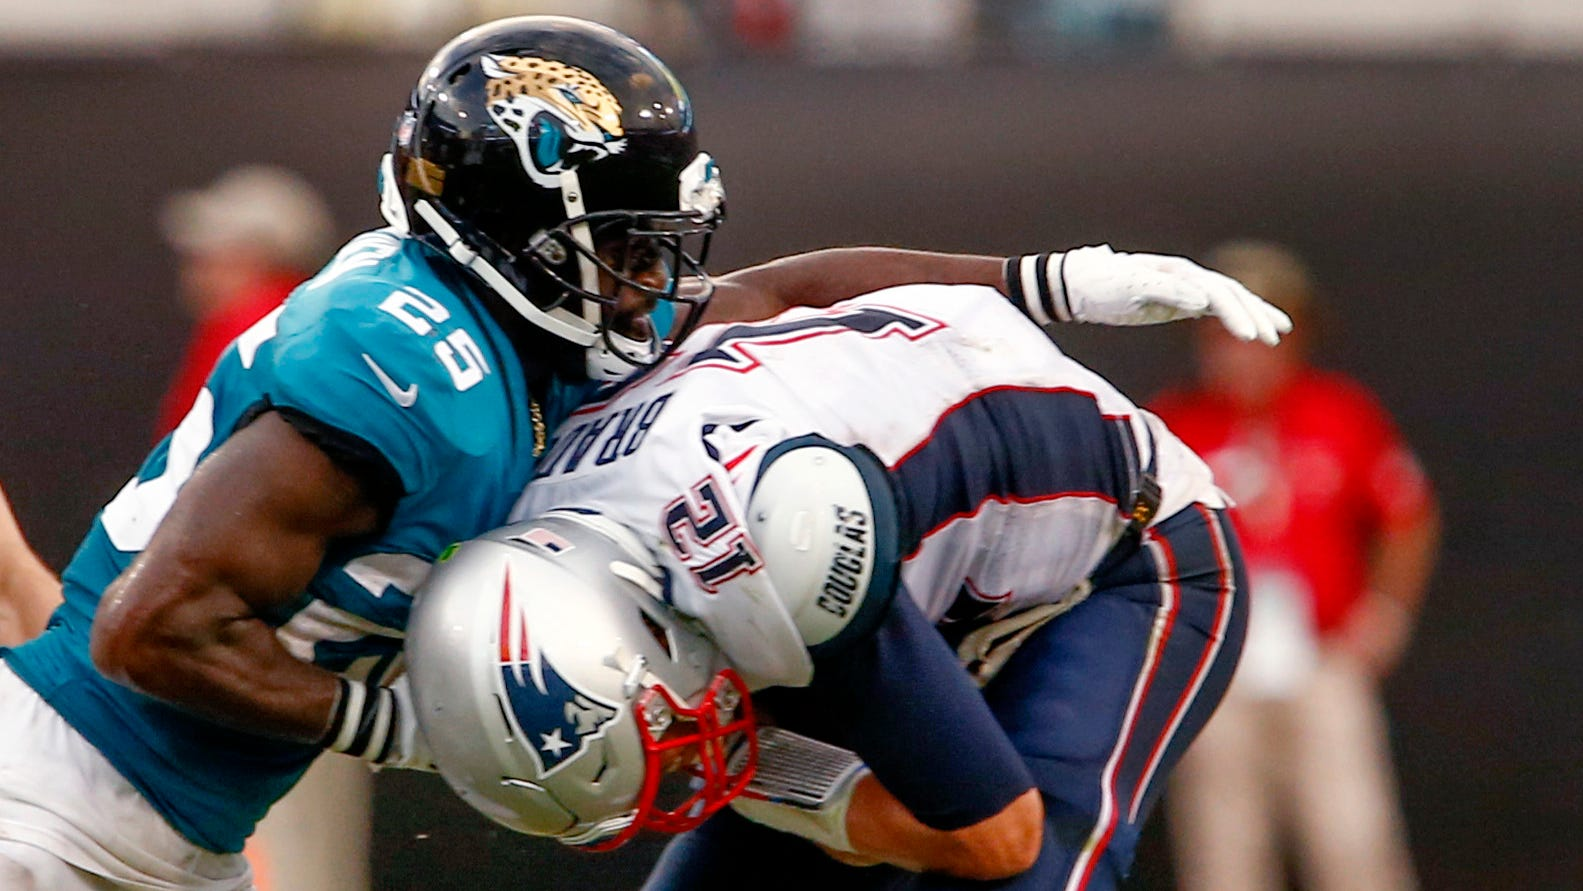 Jaguars make noise with win over Patriots, but real statement comes later